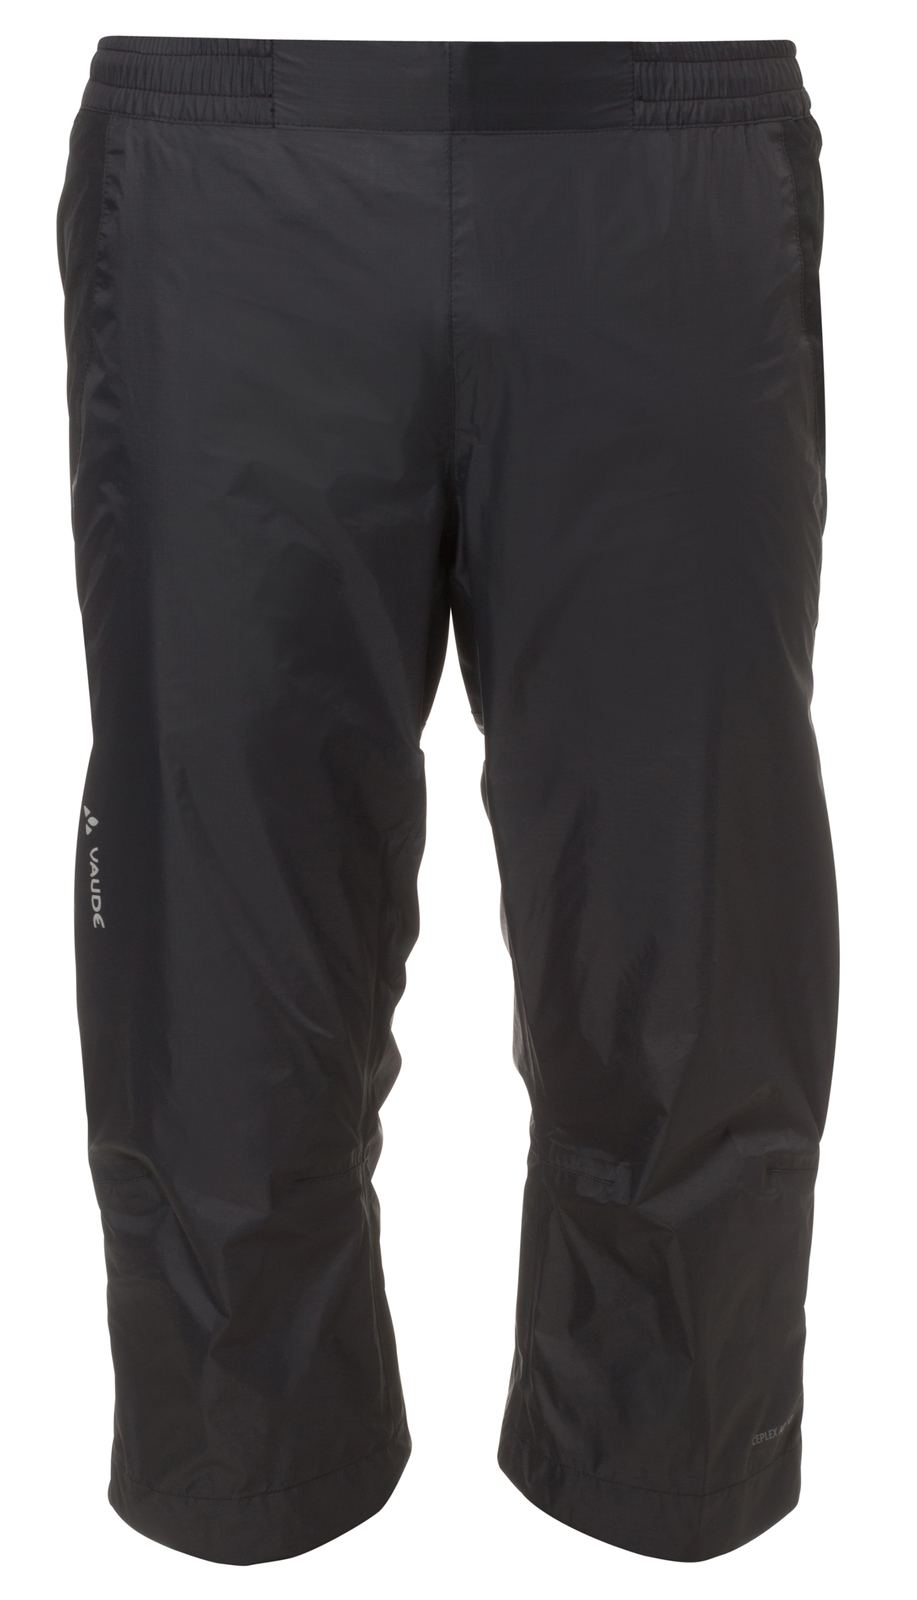 VAUDE Men´s Spray 3/4 Pants III black Größe L - schneider-sports